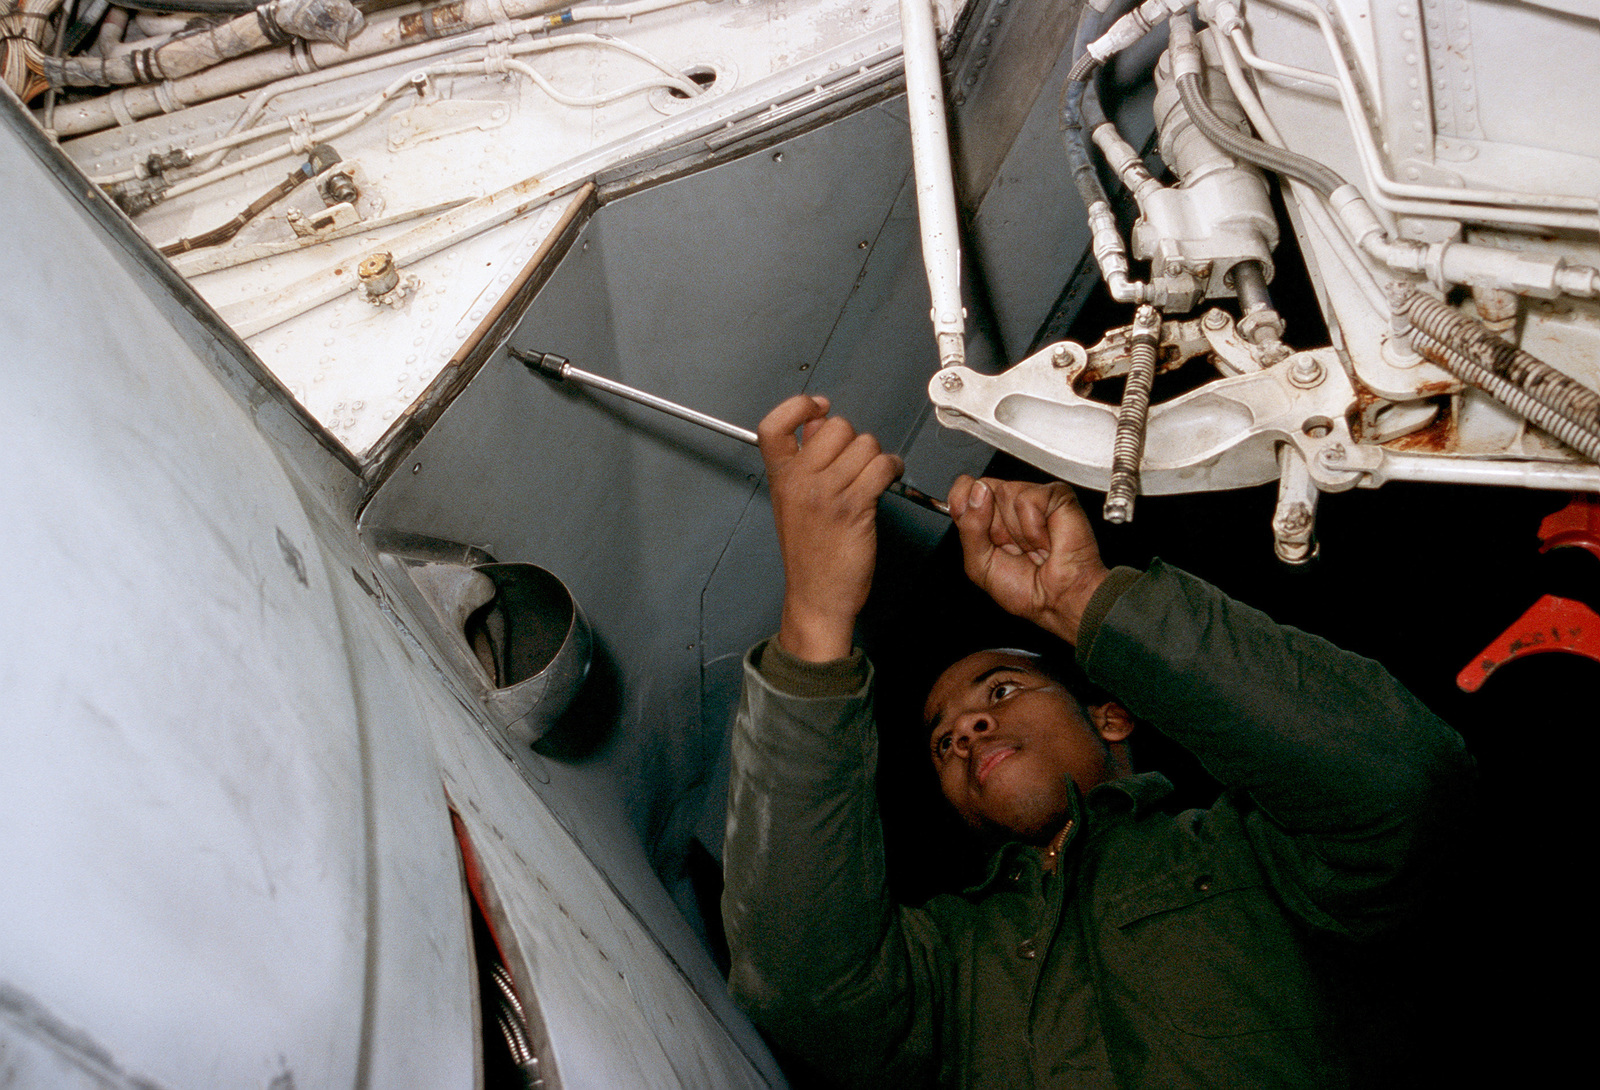 A mechanic tightens a panel near the open landing gear of an A-6E Intruder aircraft from Attack Squadron 35 (VA-35) during pre-deployment maintenance.  In less than three weeks VA-35 and the other squadrons of Carrier Air Wing 8 (CVW-8) will begin a deployment to the Western Pacific aboard the nuclear-powered aircraft carrier USS NIMITZ (CVN 68)